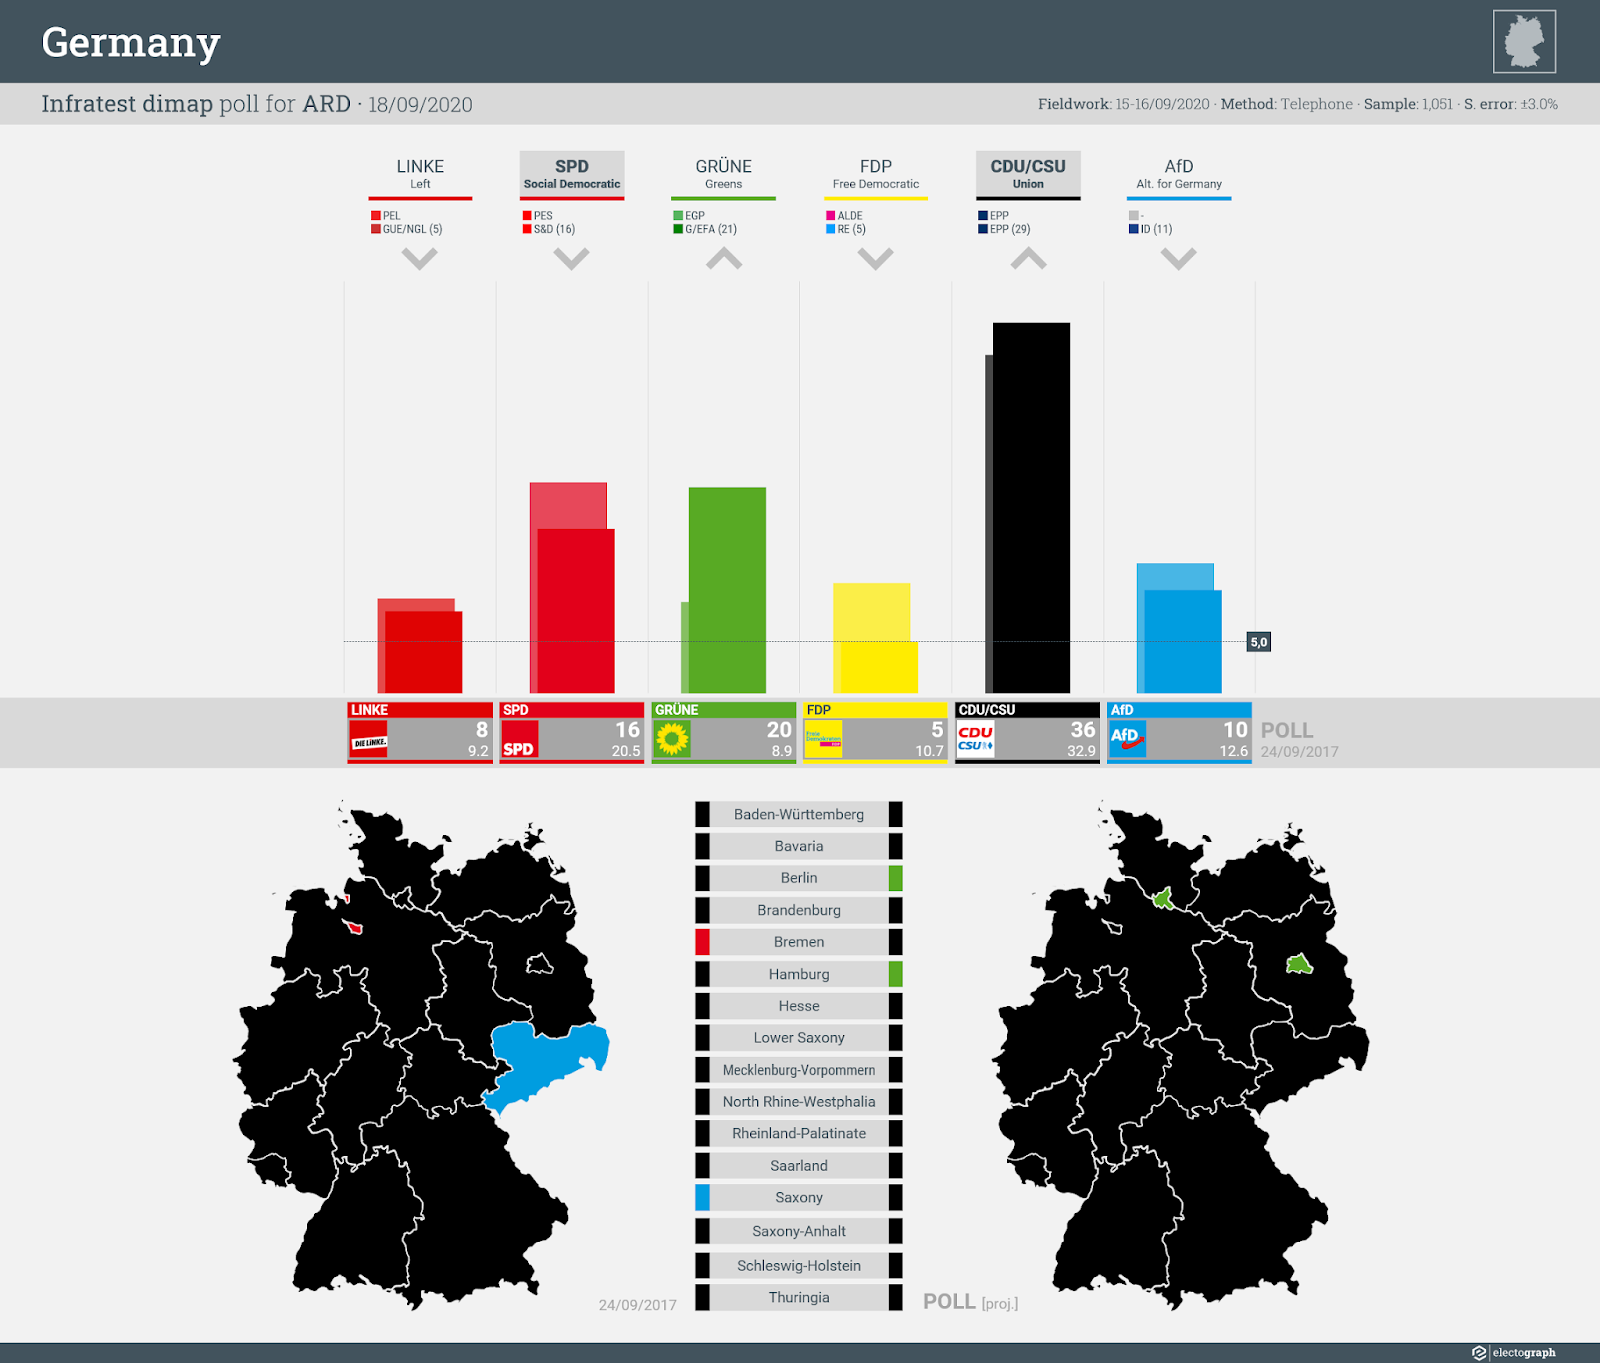 GERMANY: Infratest dimap poll chart for ARD, 18 September 2020